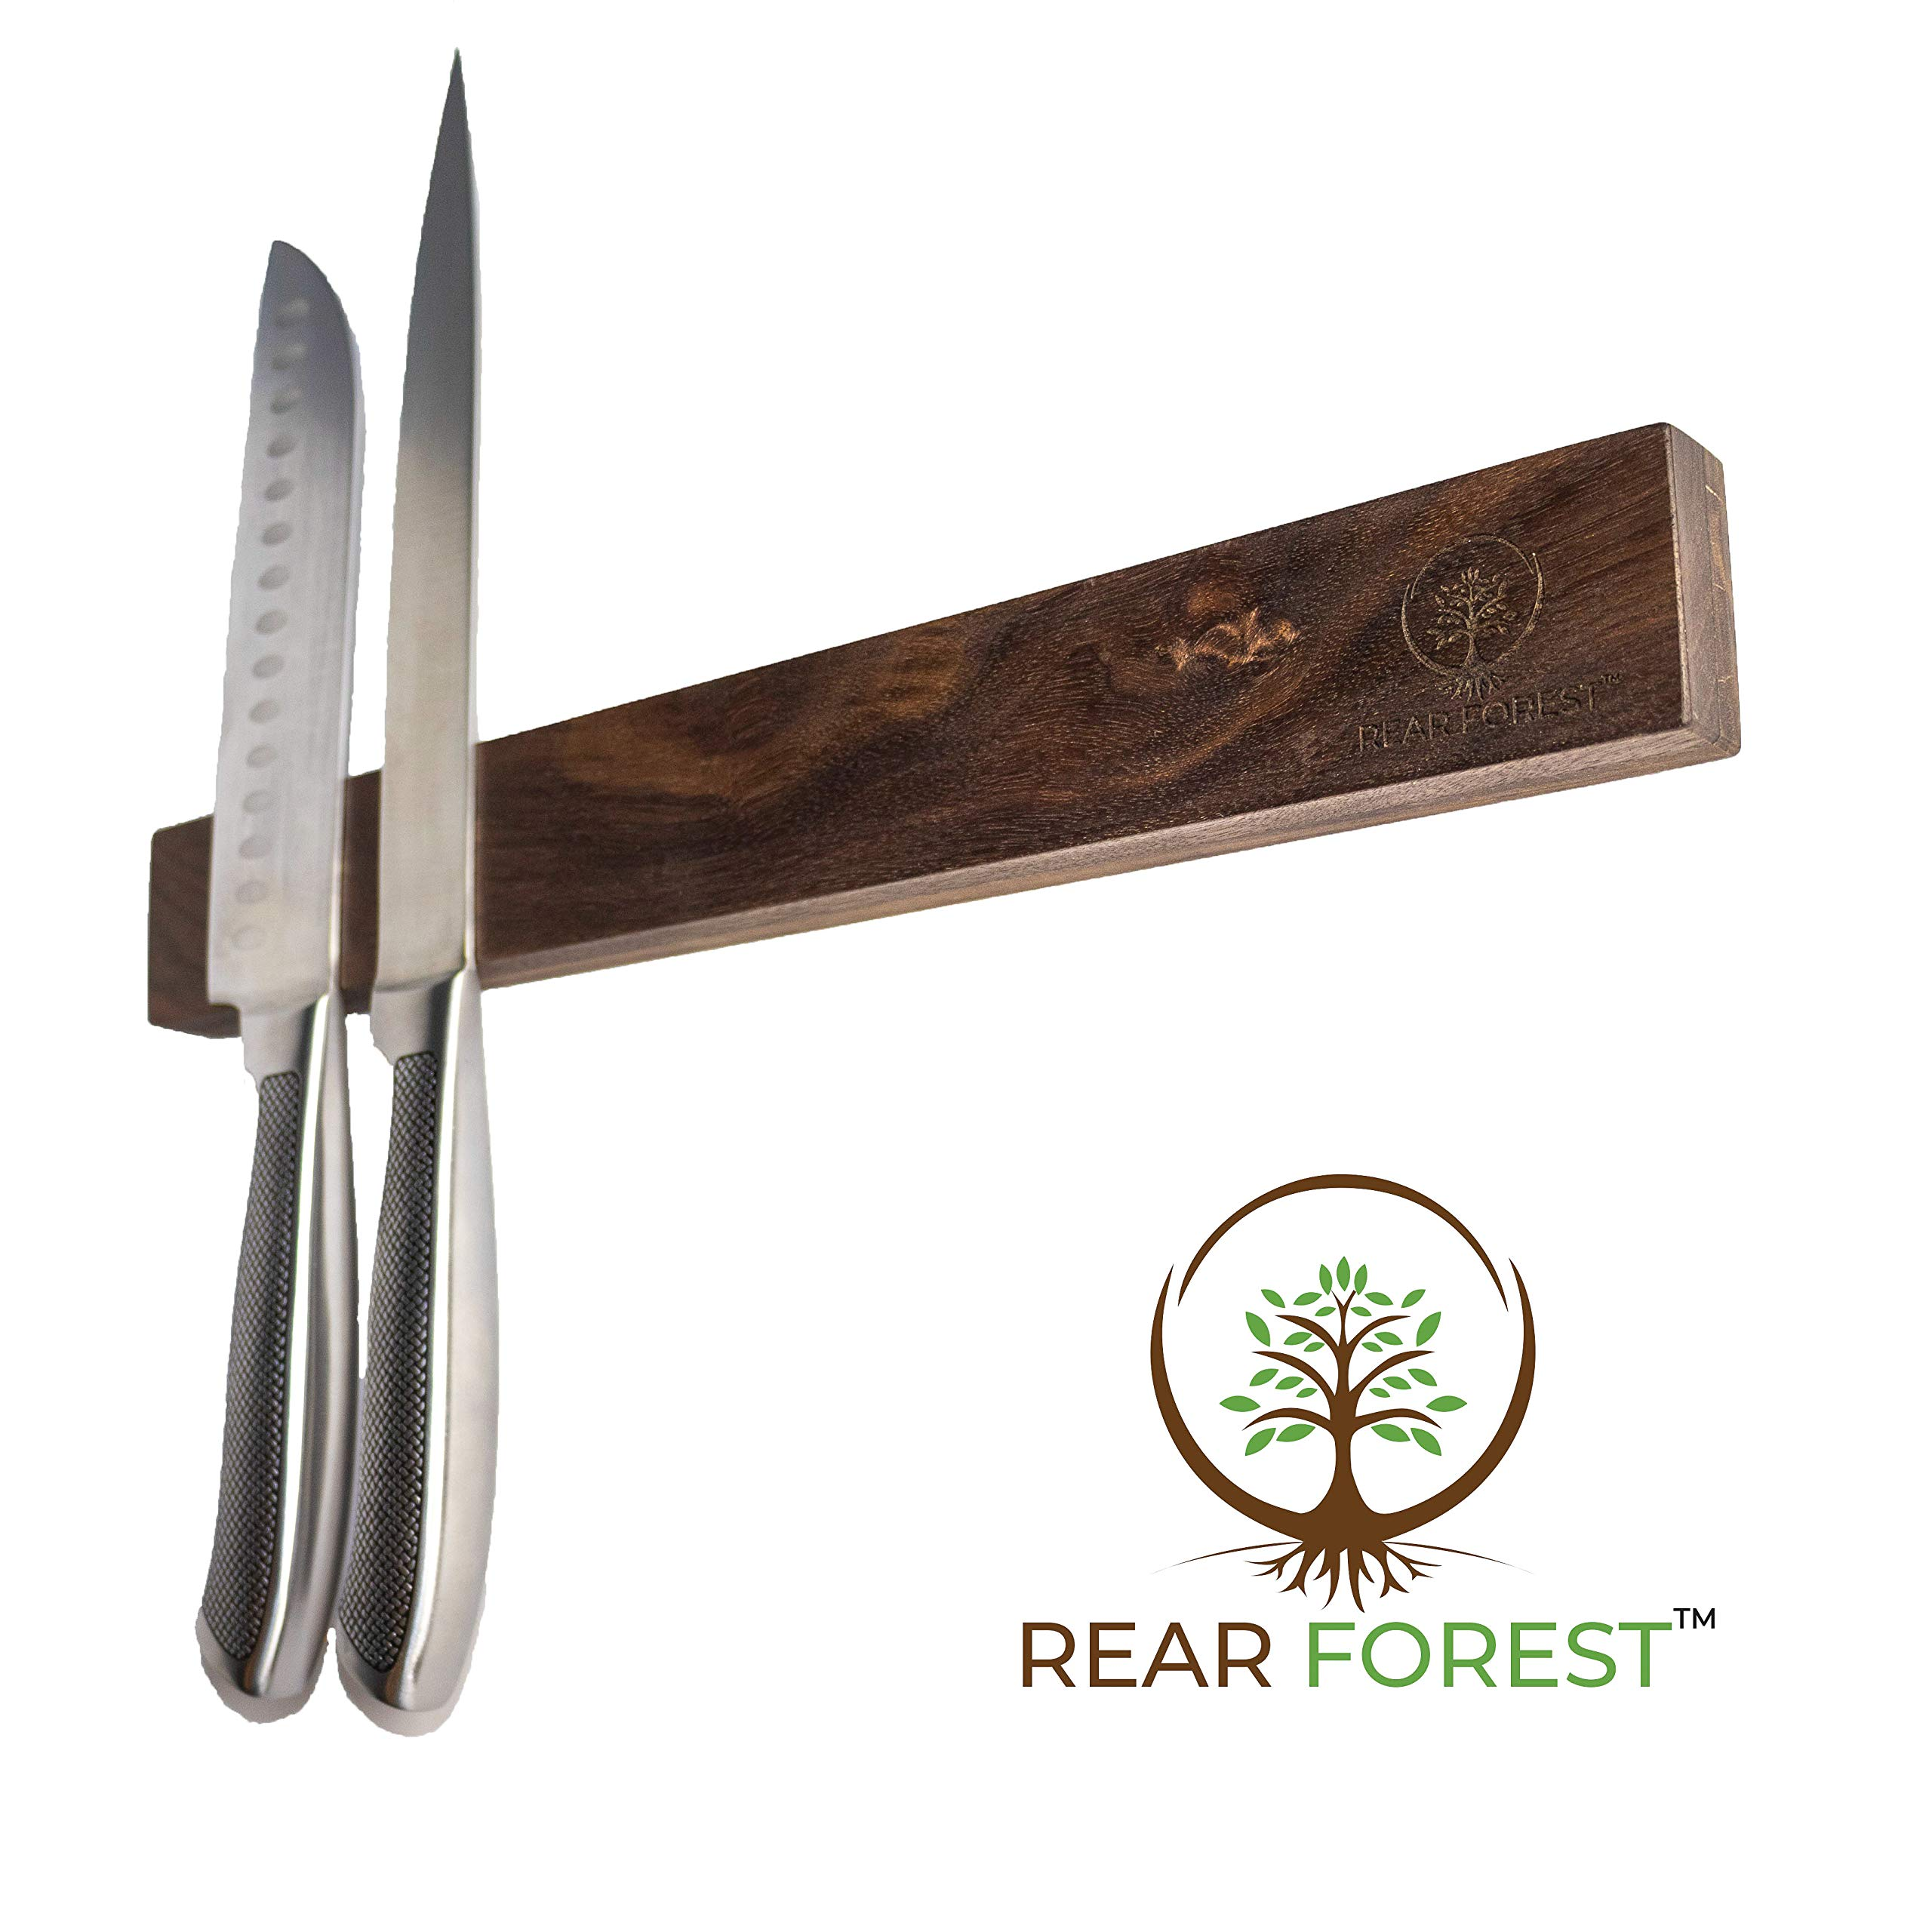 Walnut Magnetic Knife Strip | RearForest | Multipurpose Storage for Any Metal Items | Powerful Magnetic Bar in Premium Walnut Hardwood | Easy Installation on Any Surface | 18 Inch by Rear Forest